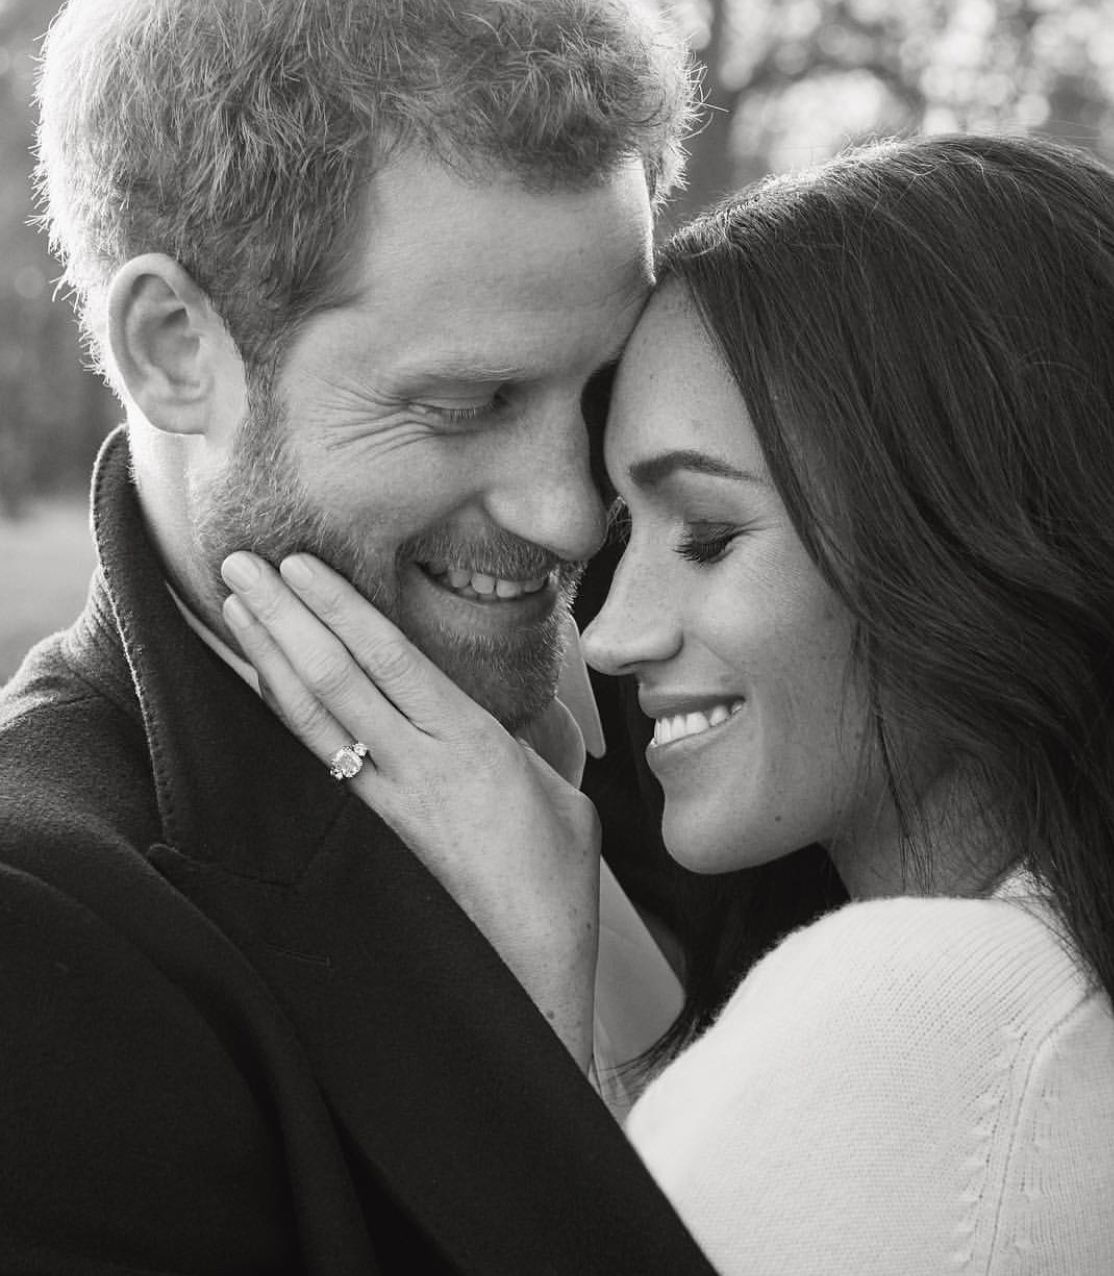 Prince Harry and Meghan Markle release new official portraits for their engagement